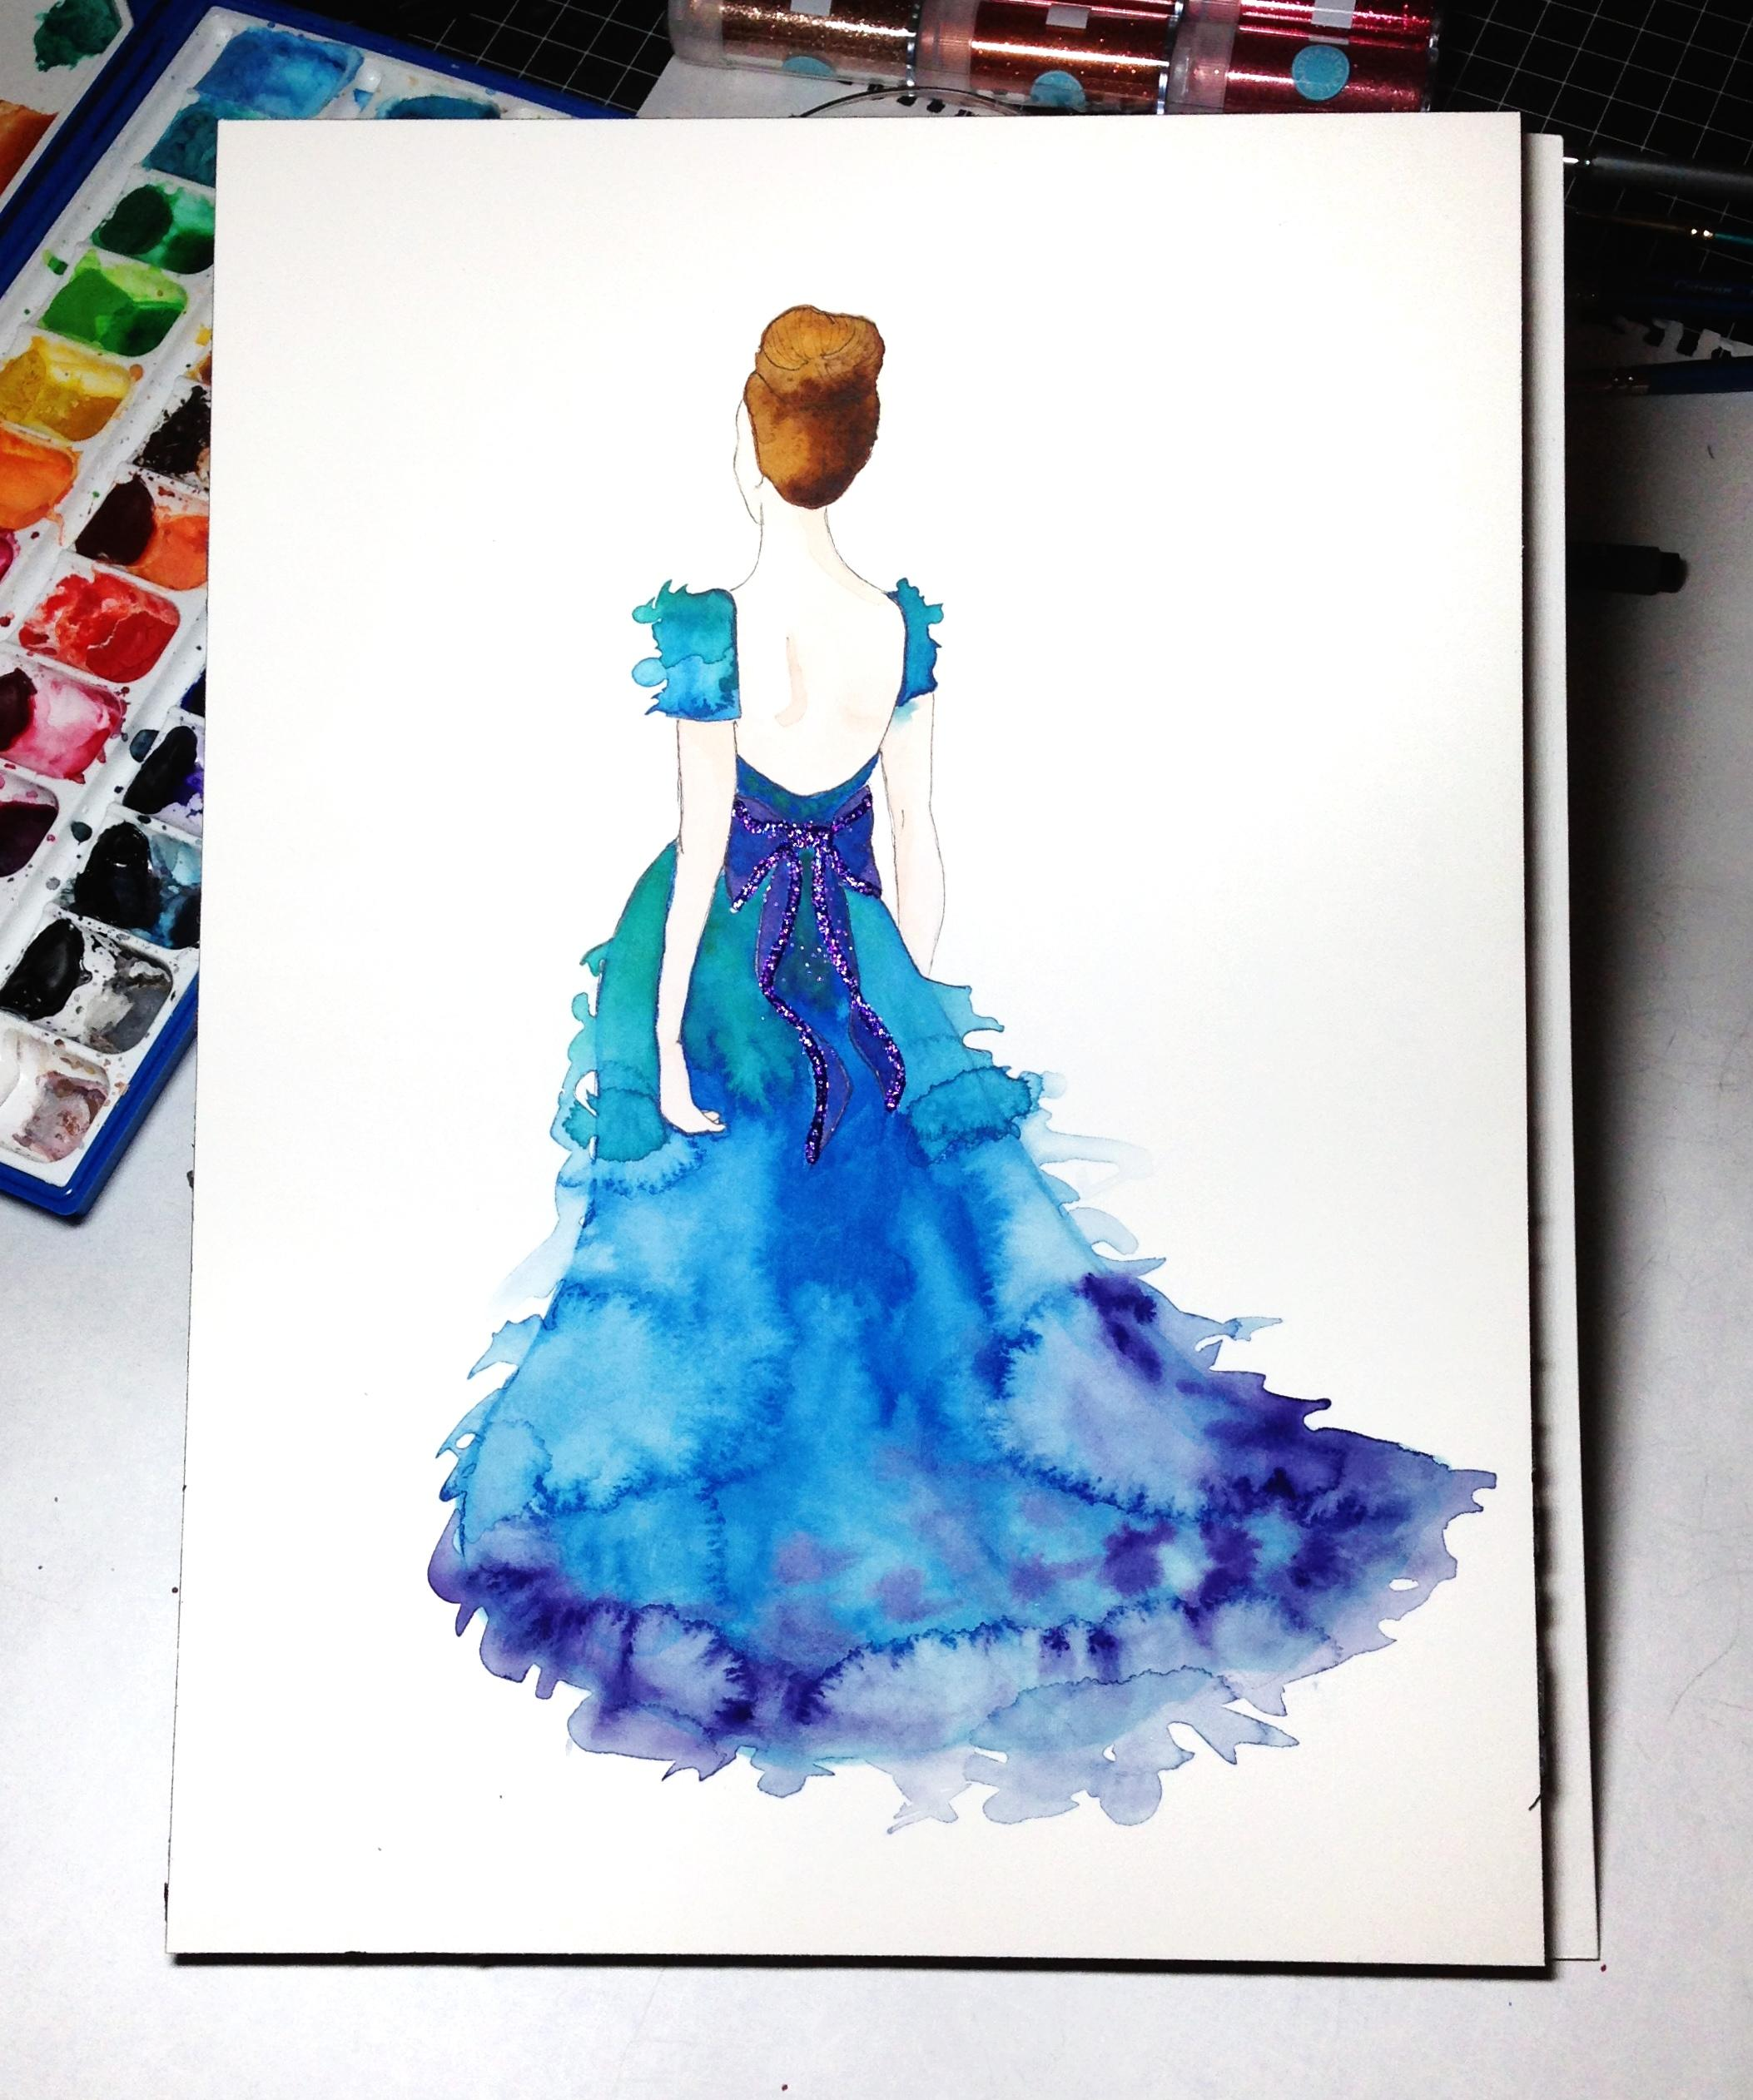 Updated: Embellished Ballerina Beauty - image 4 - student project